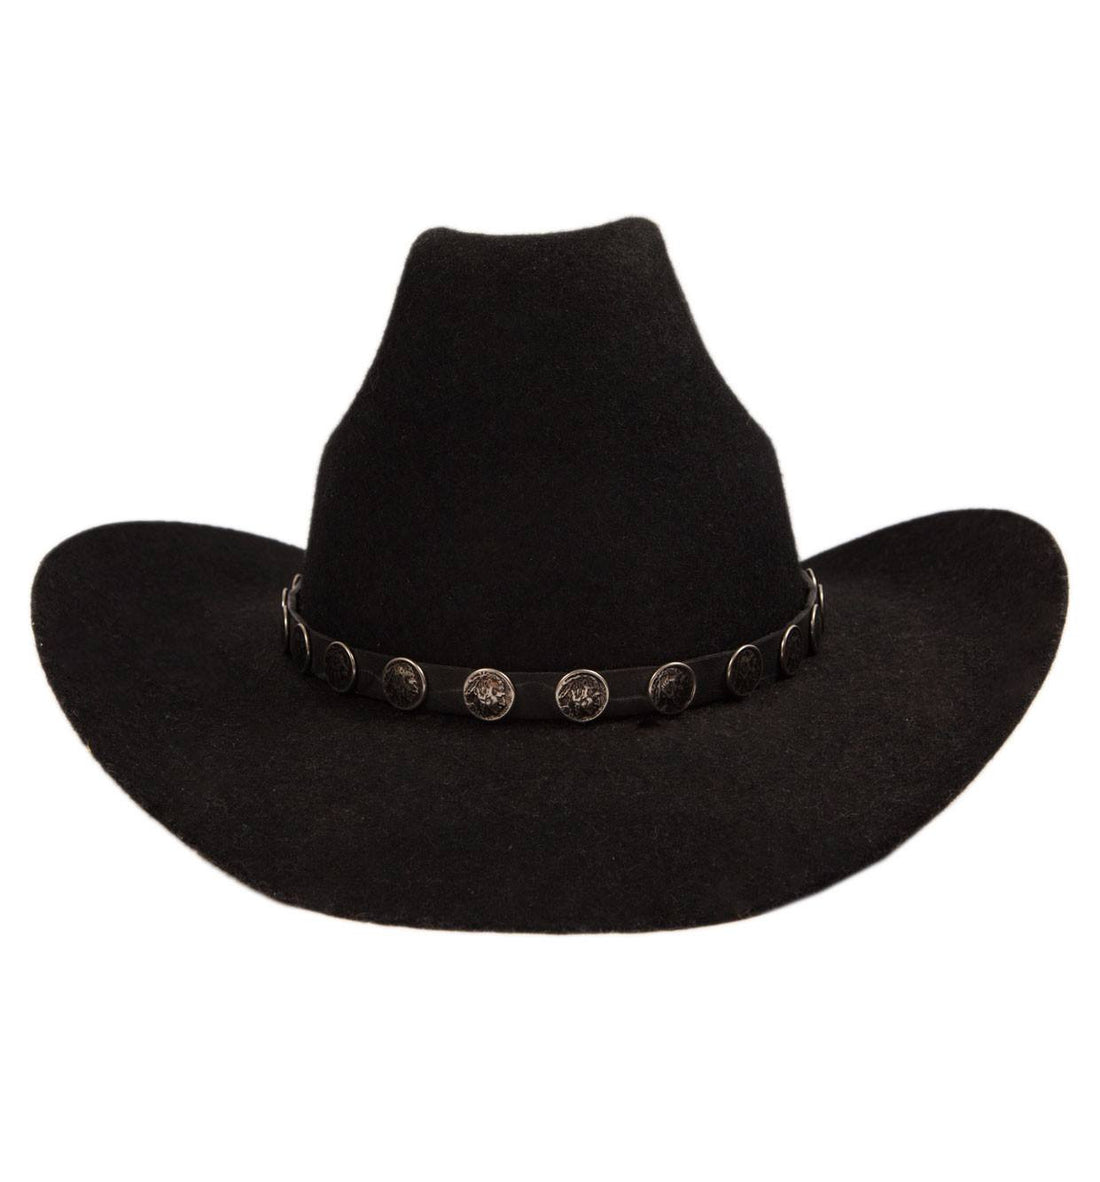 Vintage Superlan Black Hat - Vintage - Iron and Resin